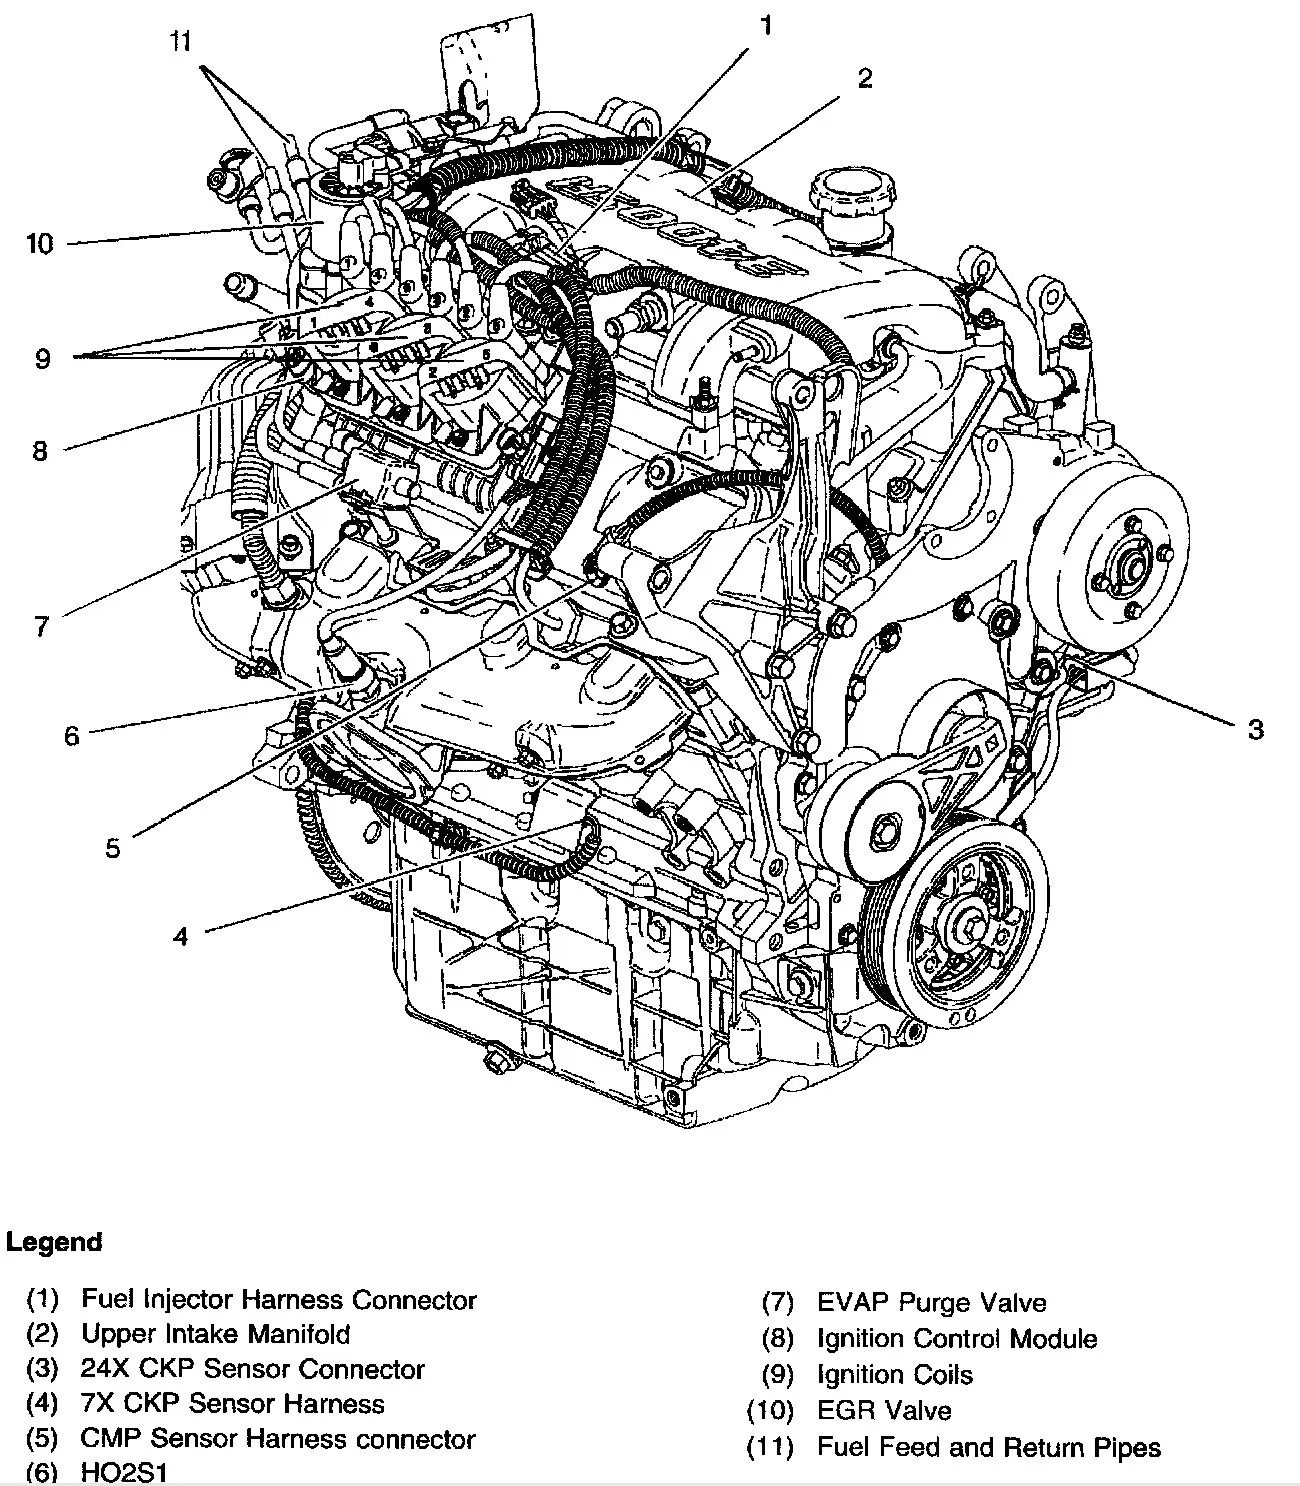 hight resolution of 2005 chevy impala engine diagram unlimited access to wiring